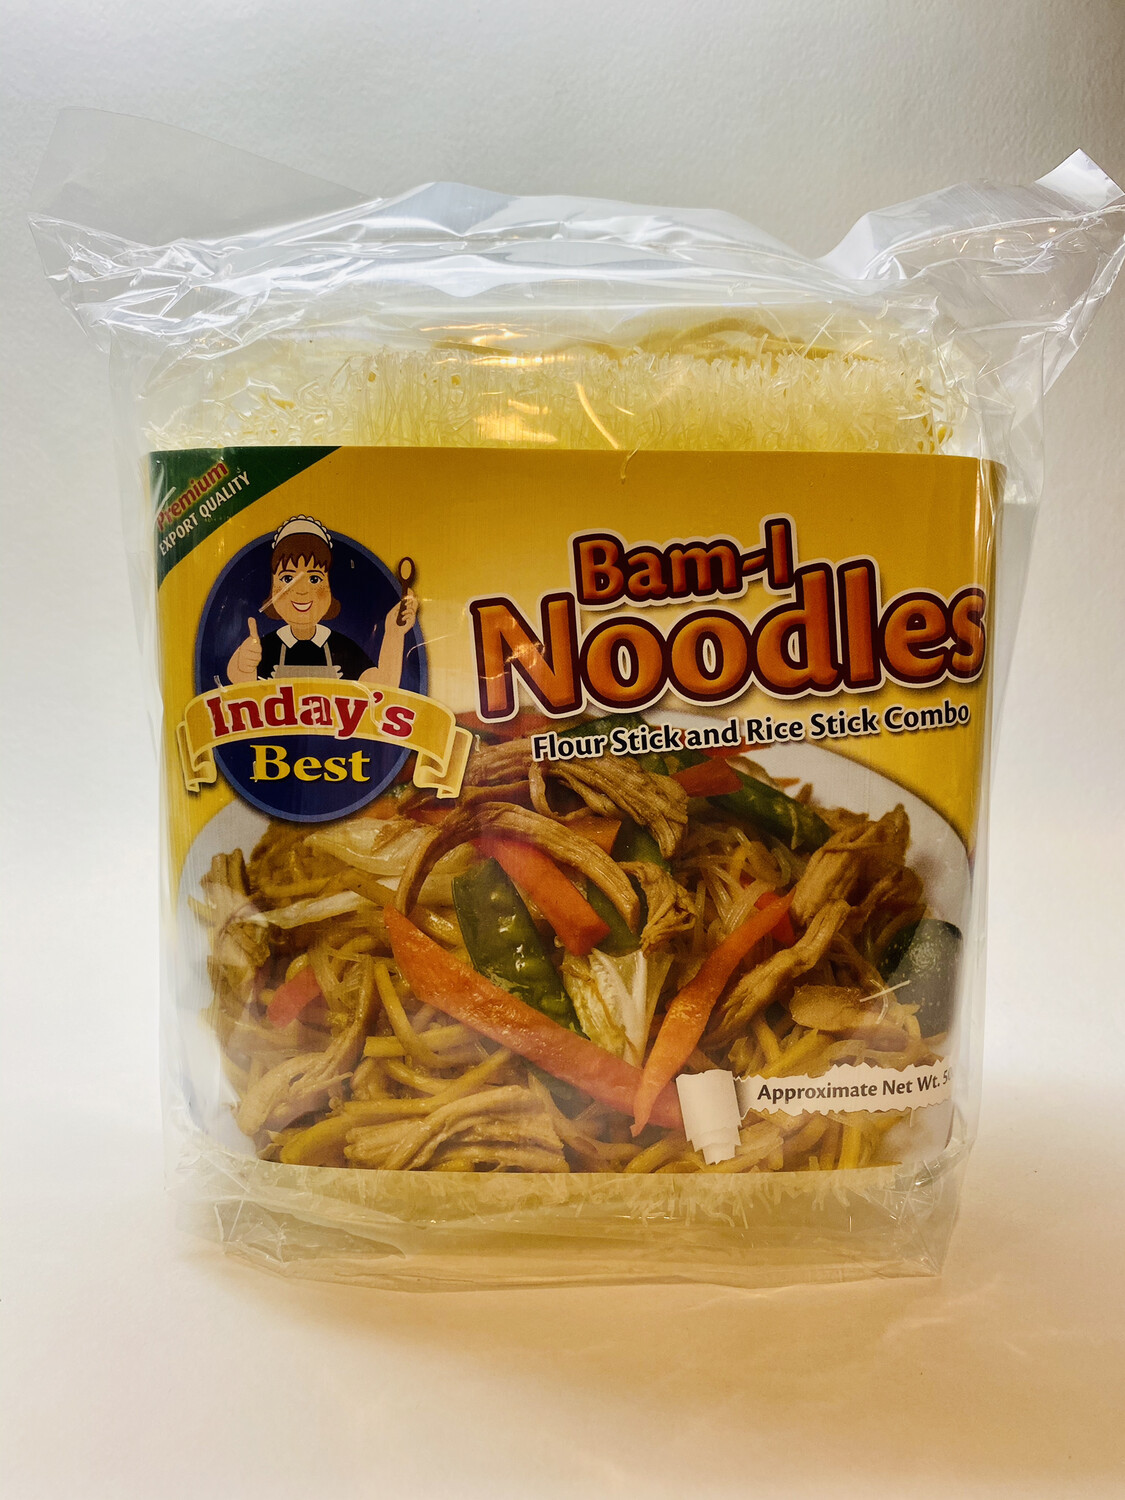 Inday's Best - Bam-I Noodles - 500 GRAMS